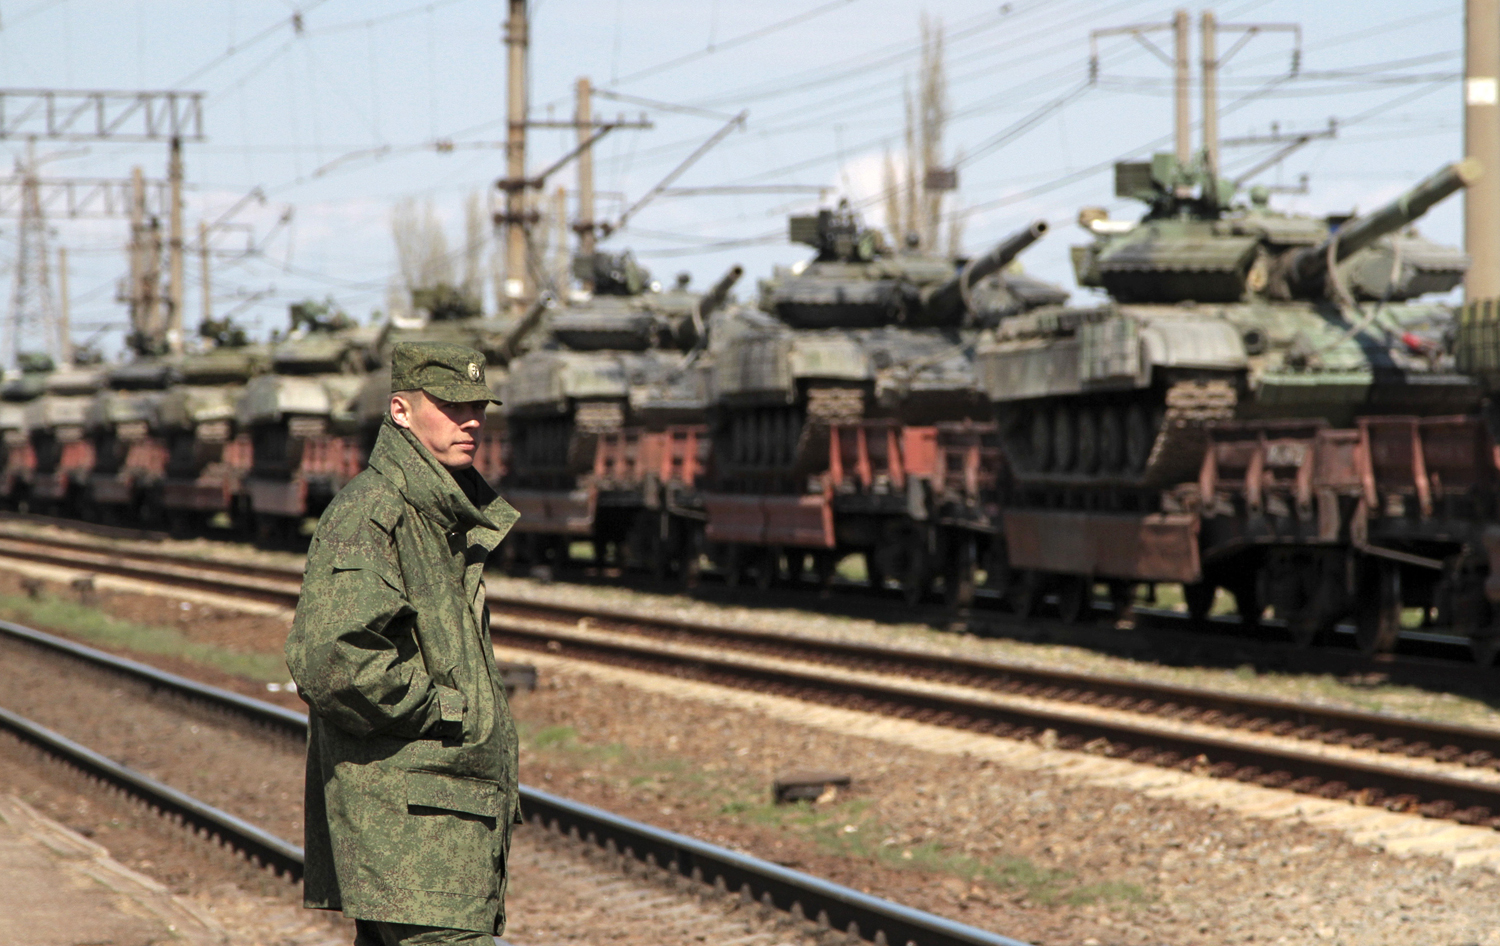 A Russian serviceman stands near Ukrainian tanks on freight cars before departing from Crimea